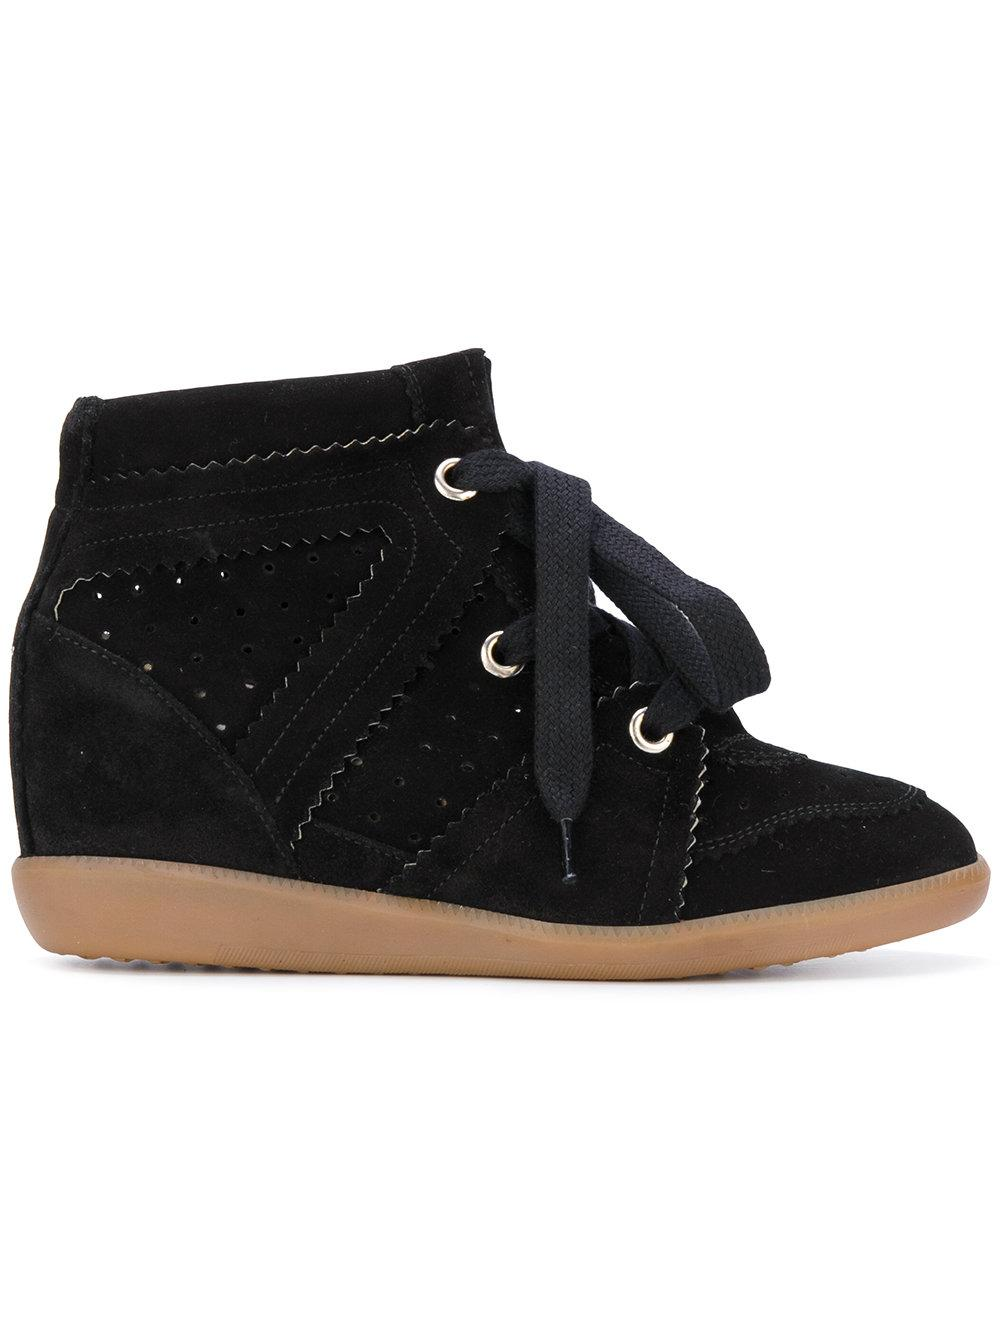 isabel marant bobby wedge trainers in black lyst. Black Bedroom Furniture Sets. Home Design Ideas